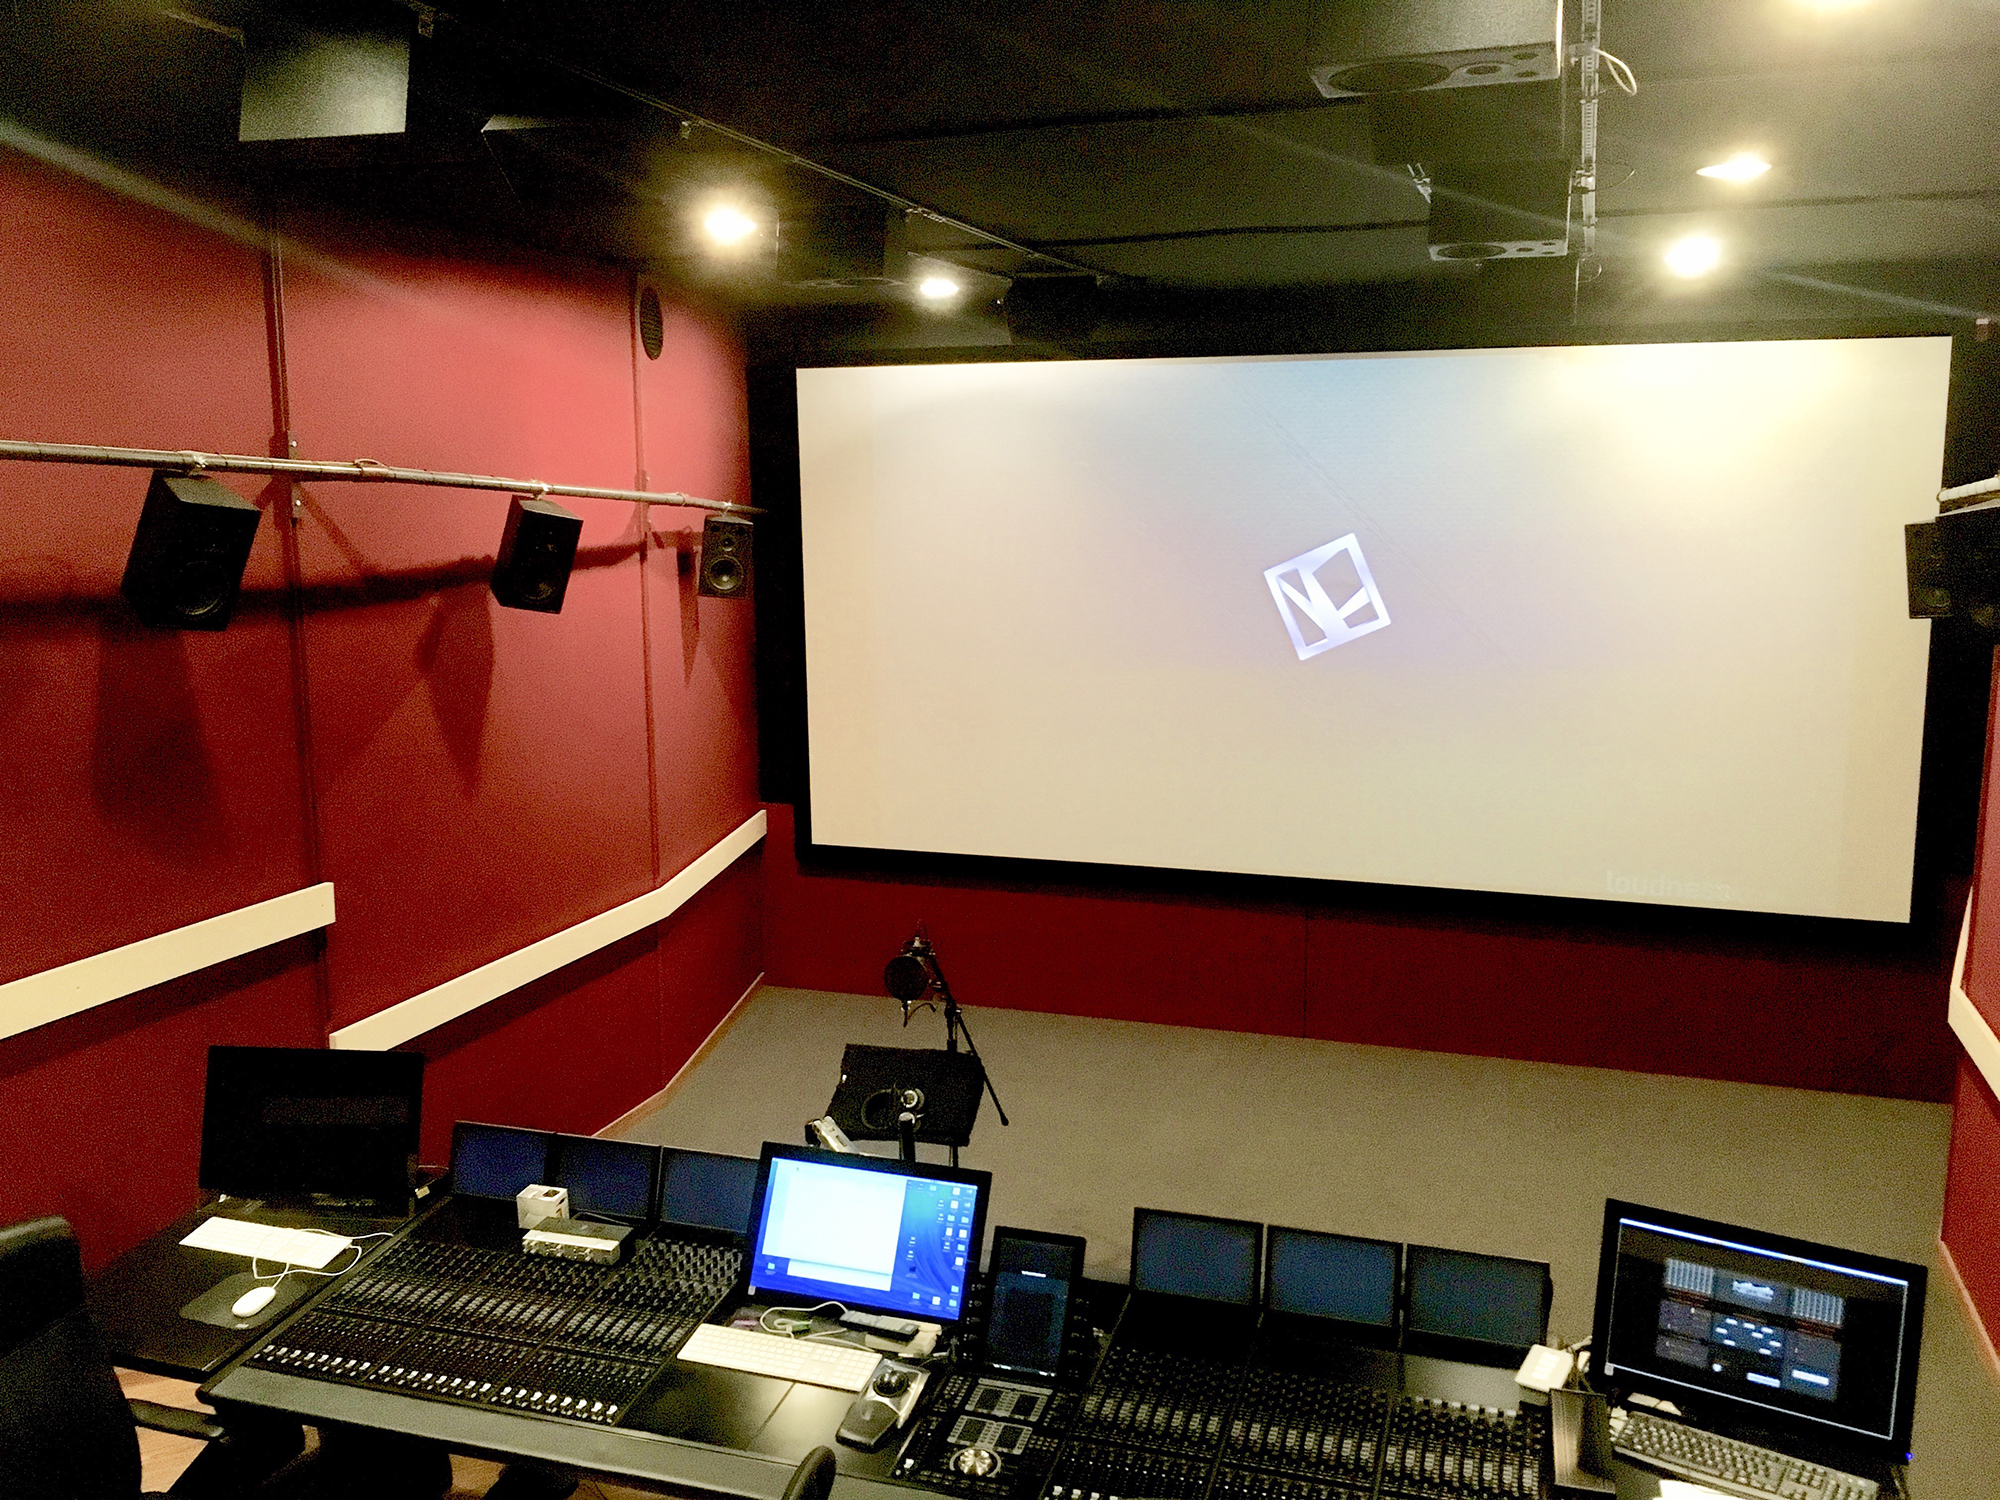 Audio Excellence Home Cinema High End Screen Loudspeakers What Does Your Wiring Cabinet Look Like Avs Forum Theater Understandably Most People Dont Have Access To The Level Of Performance And Detail Experienced In A Post Production Suite